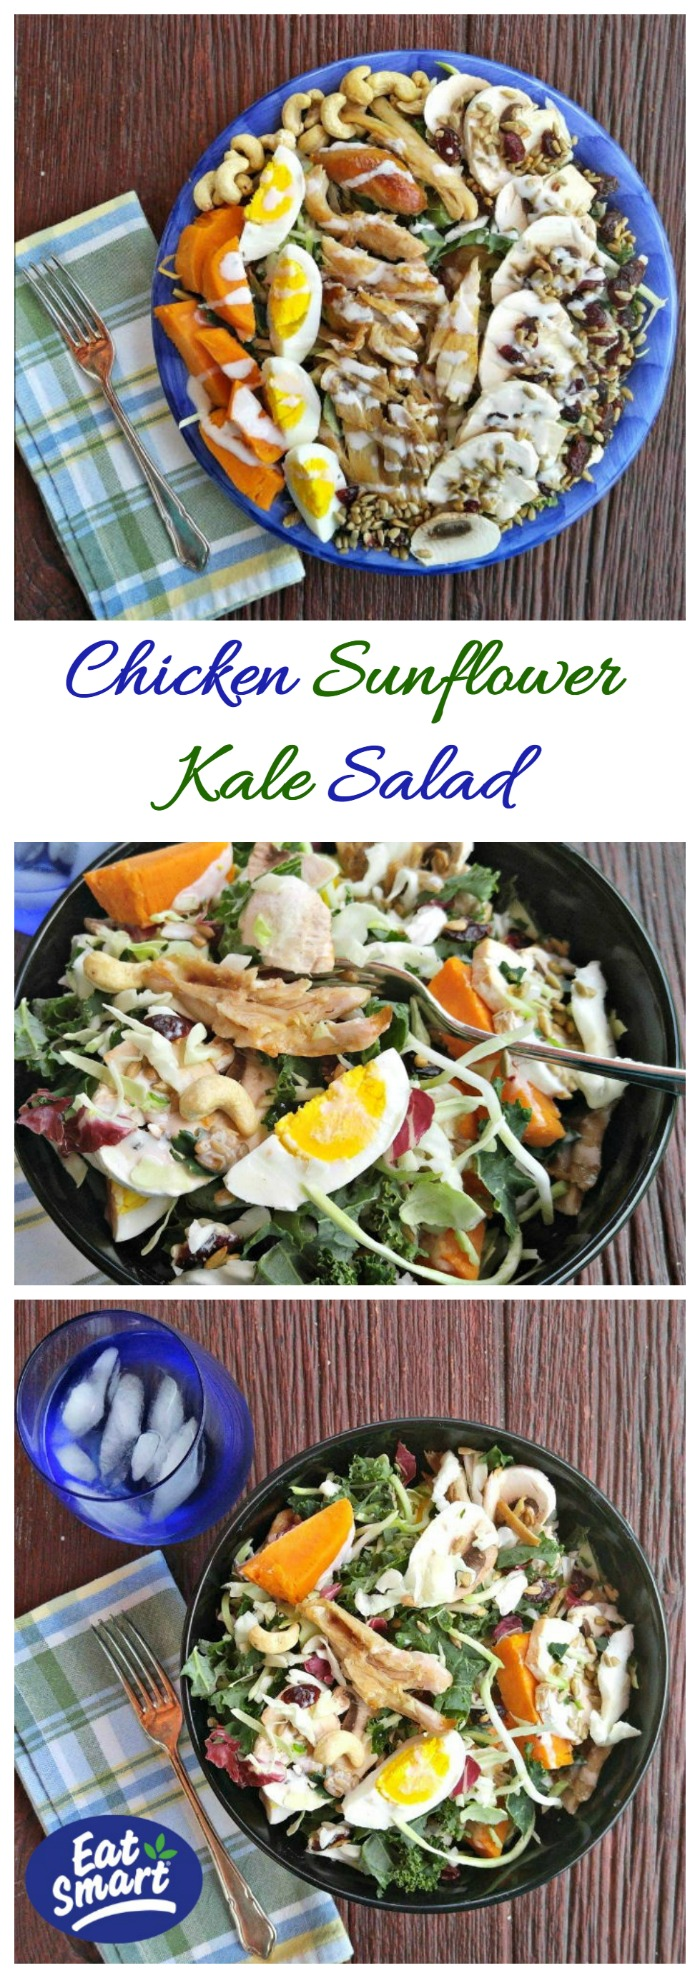 Hearty Chicken Sunflower Kale Salad